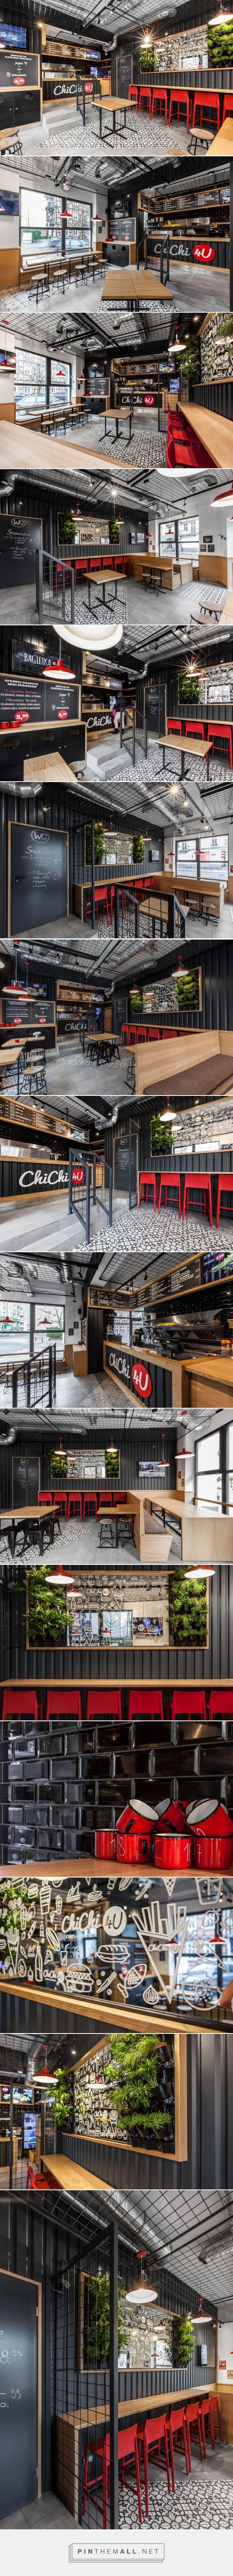 ChiChi 4U Burger Bar ... https://pinthemall.net/pin/56f6a0062ea1d/?creation=1